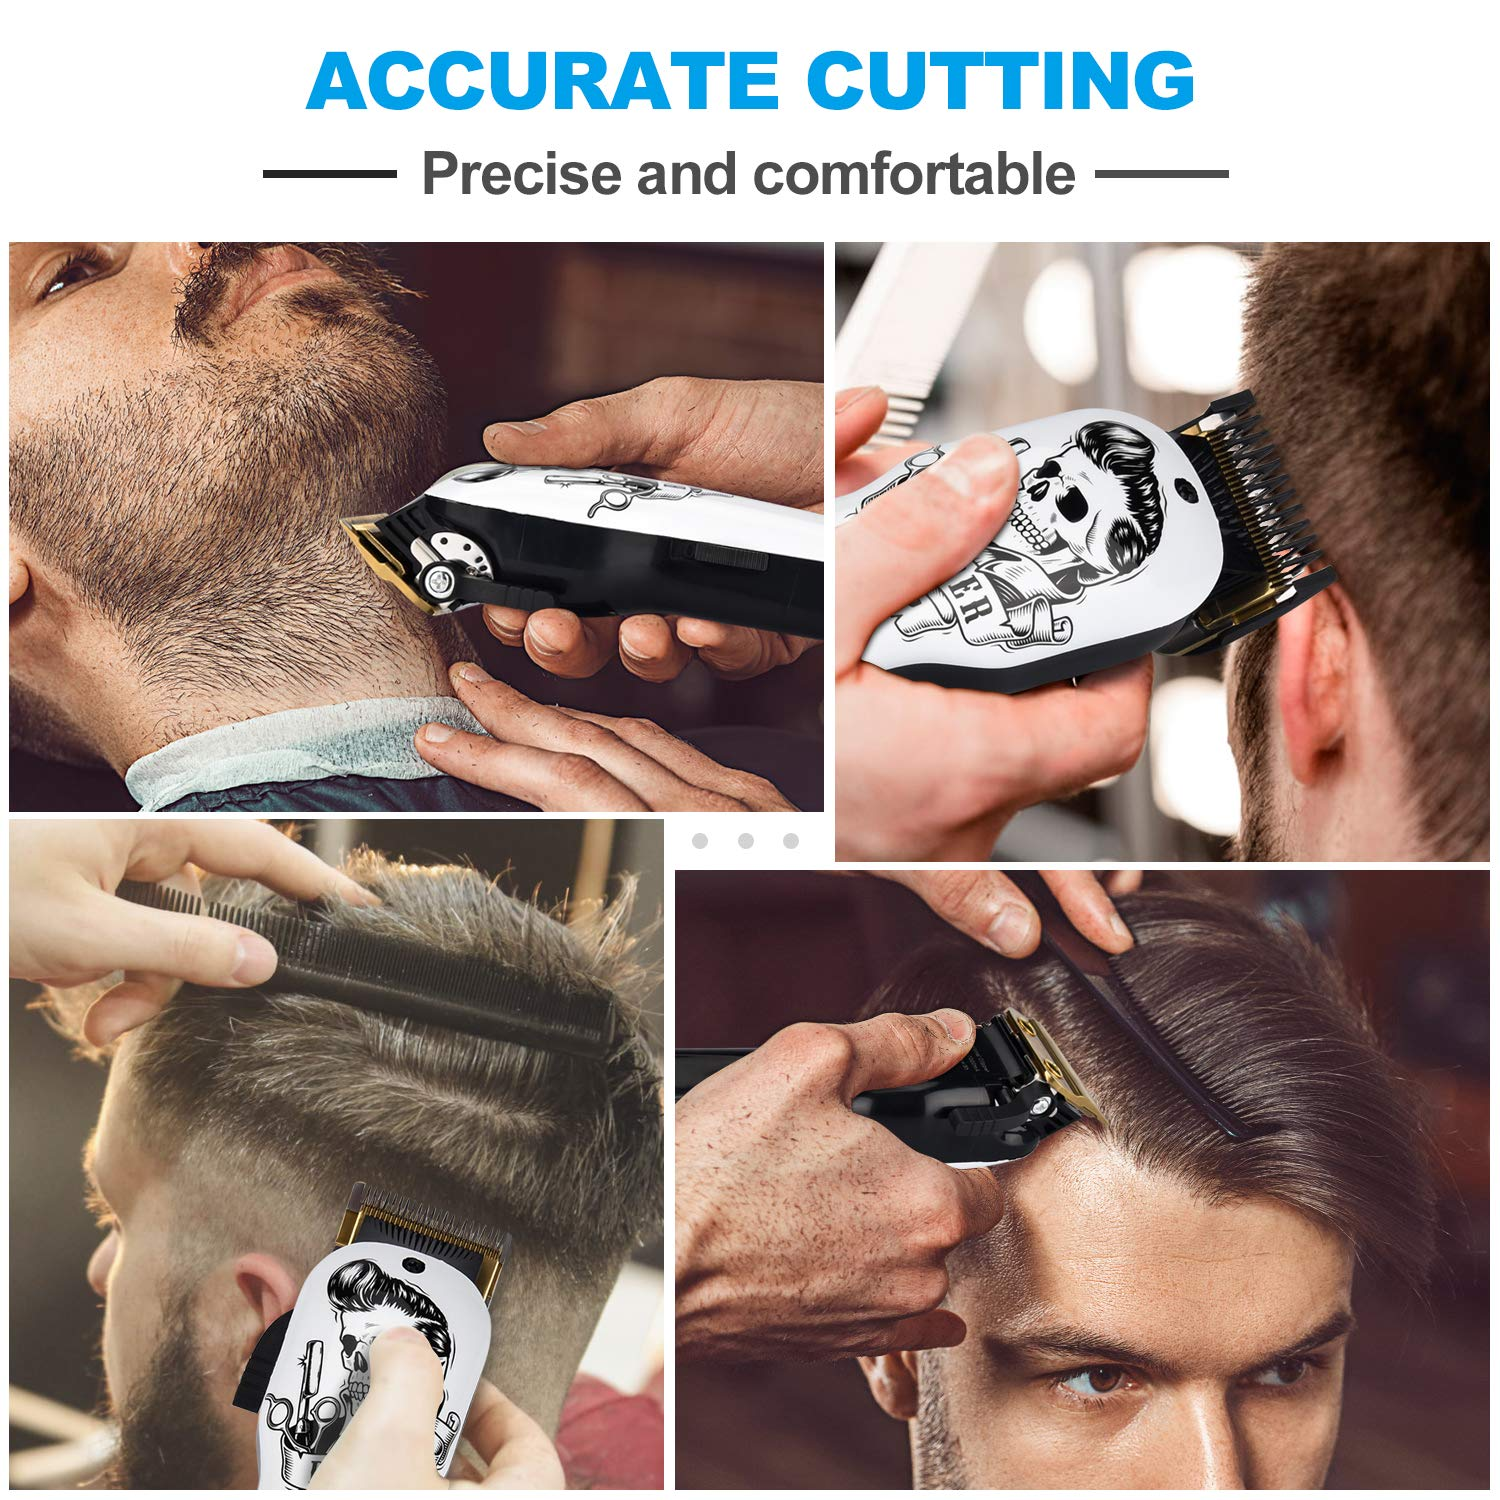 Professional Cordless Hair Clippers Electric Hair Cutter Machine Kit Rechargeable Wireless Hair Grooming Trimmers Set with 6Pcs Guide Combs for Men Kids Babies Family Home